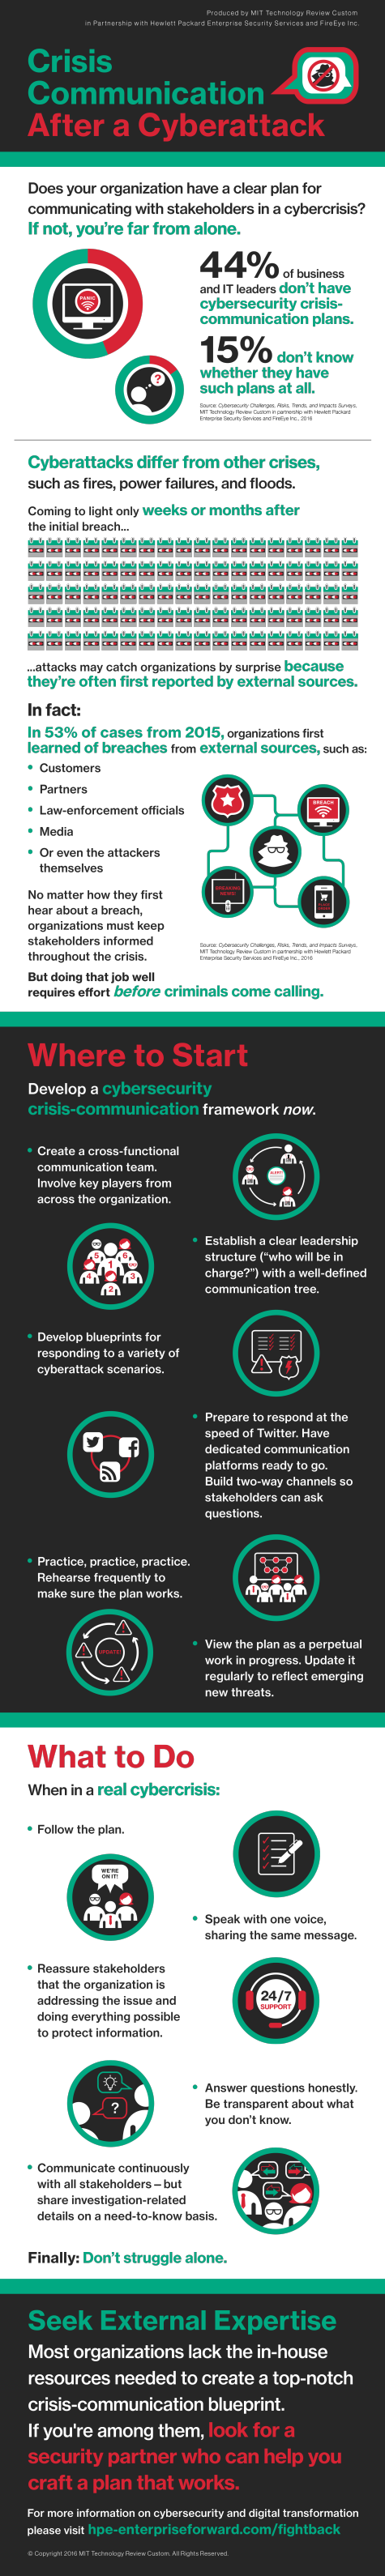 Crisis Communication After an Attack - MIT Technology Review